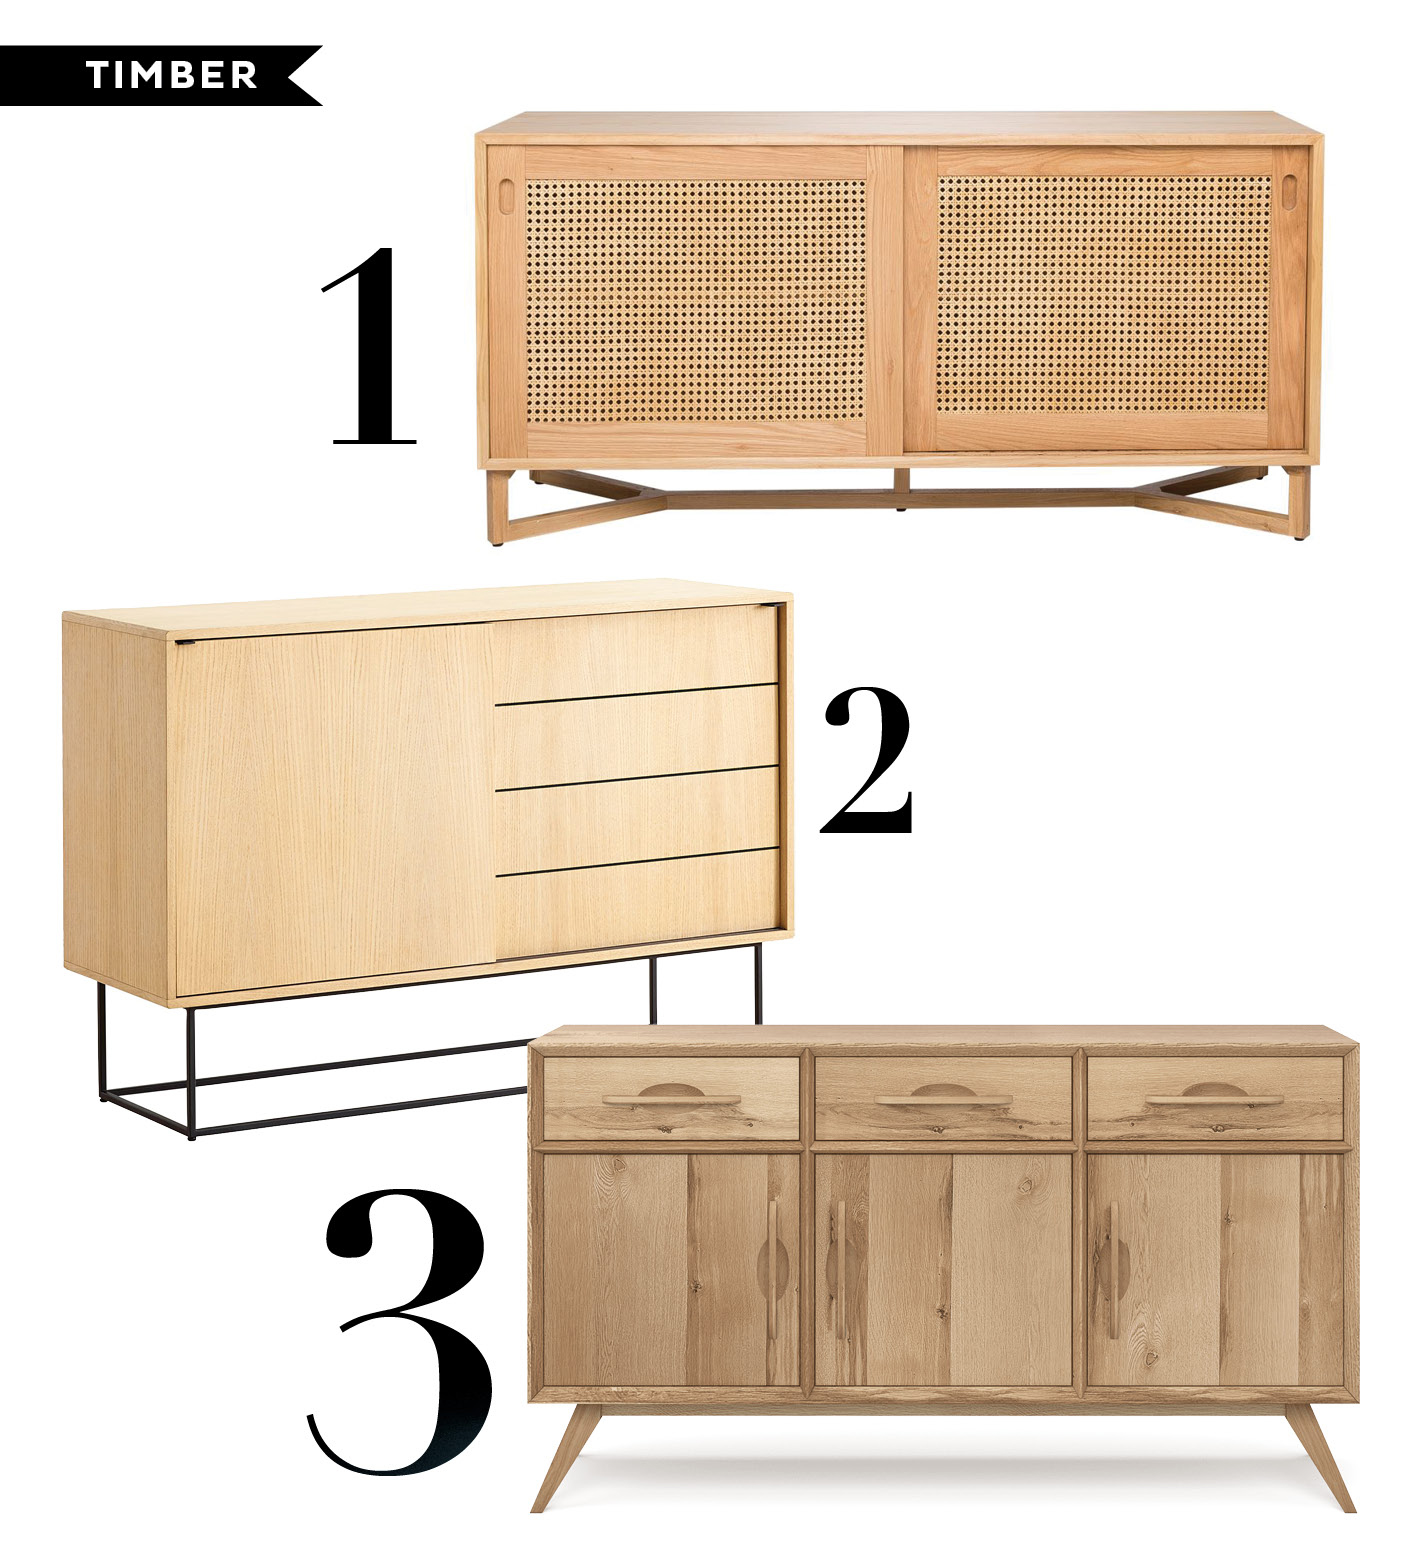 adore_home_magazine_timber_sideboards_top3_furniture_buffet.jpg